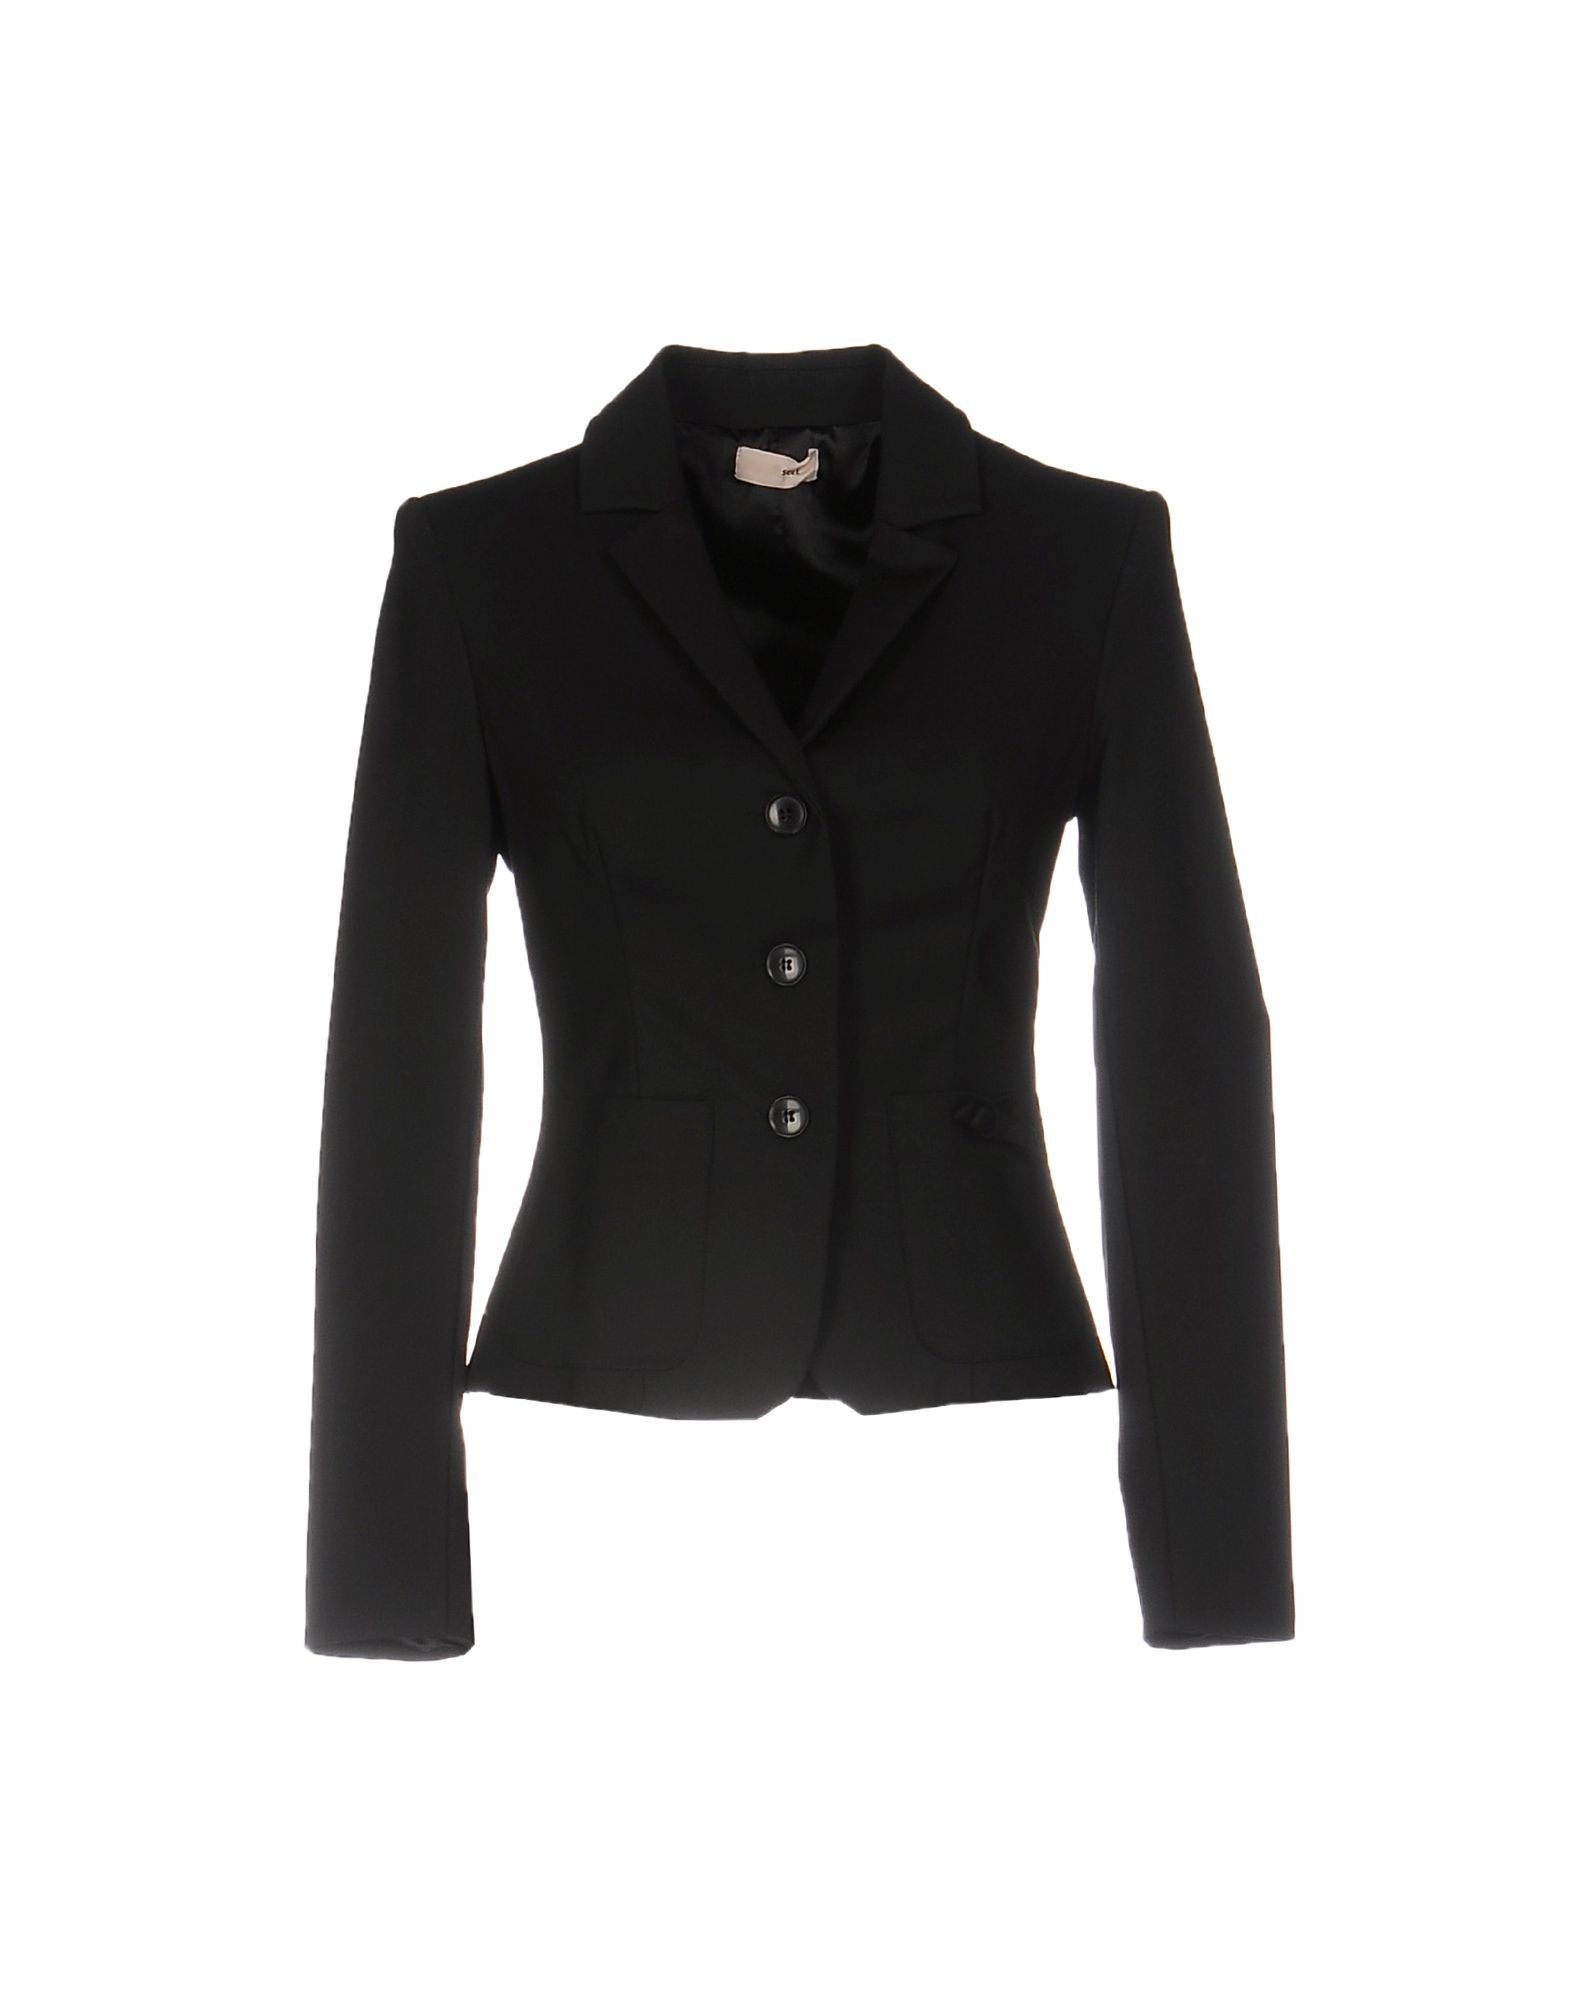 Scee By Twinset Black Cotton Single Breasted Blazer